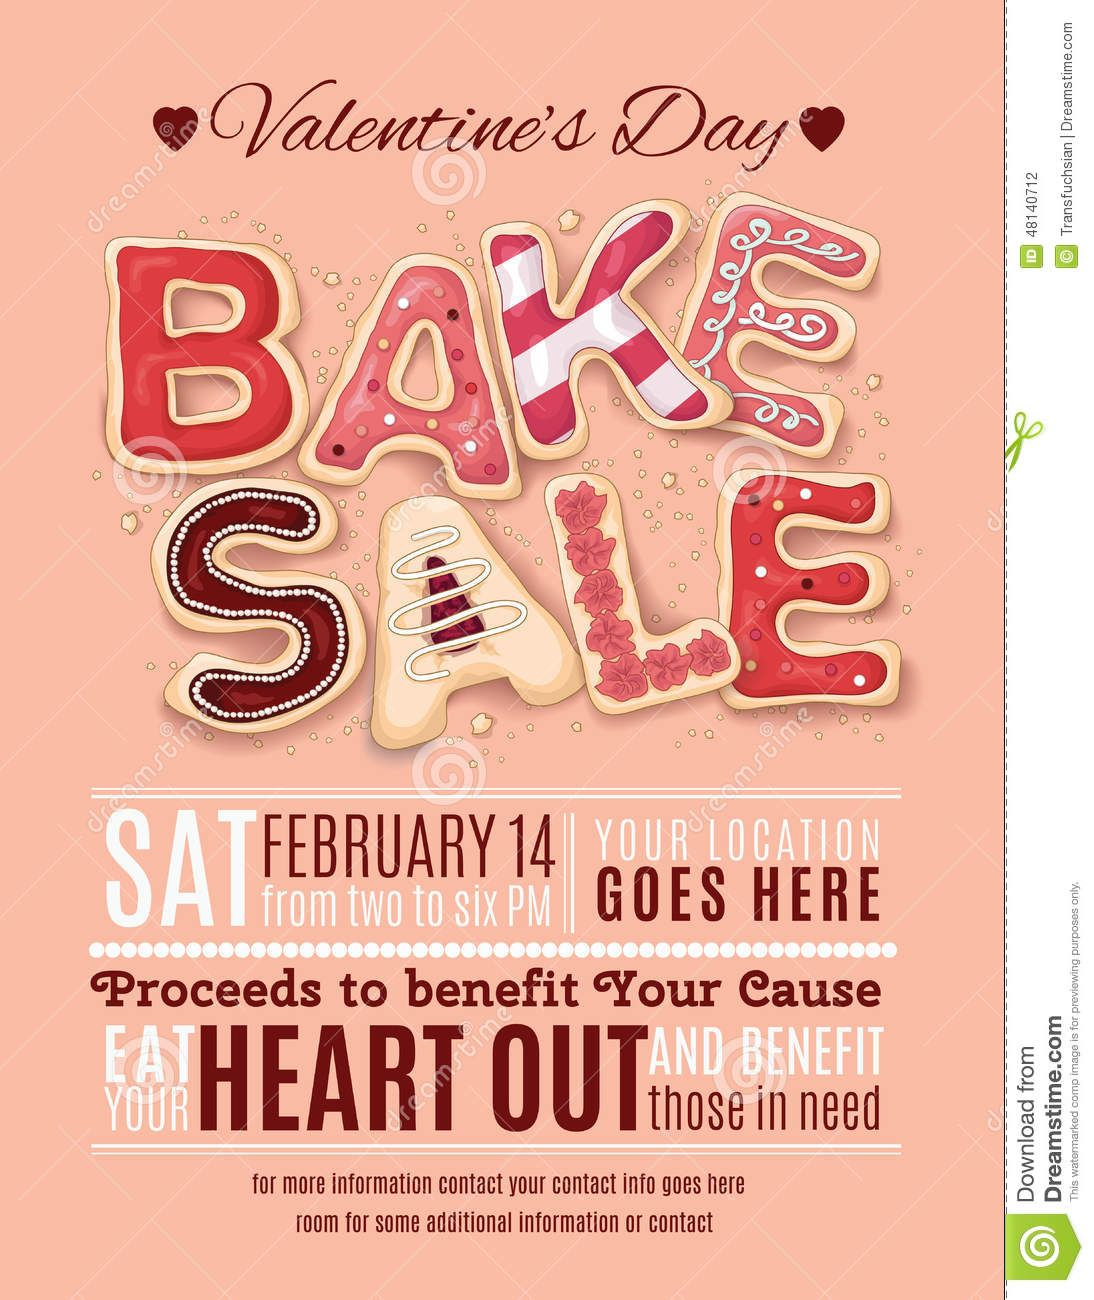 Valentines Day Bake Sale Flyer Template Download From Over 46